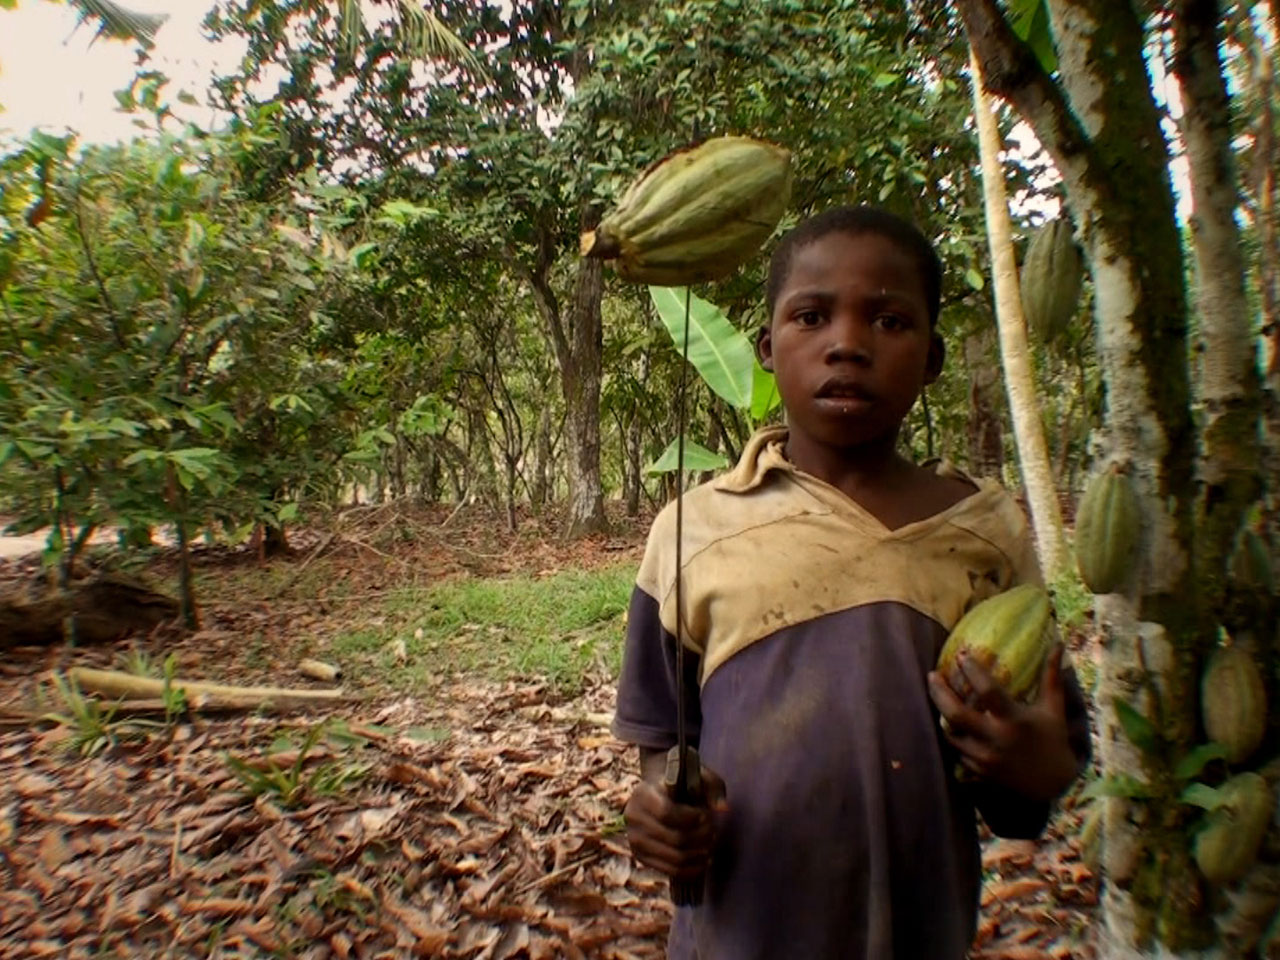 Documentary reveals child abuse in African cocoa industry ...